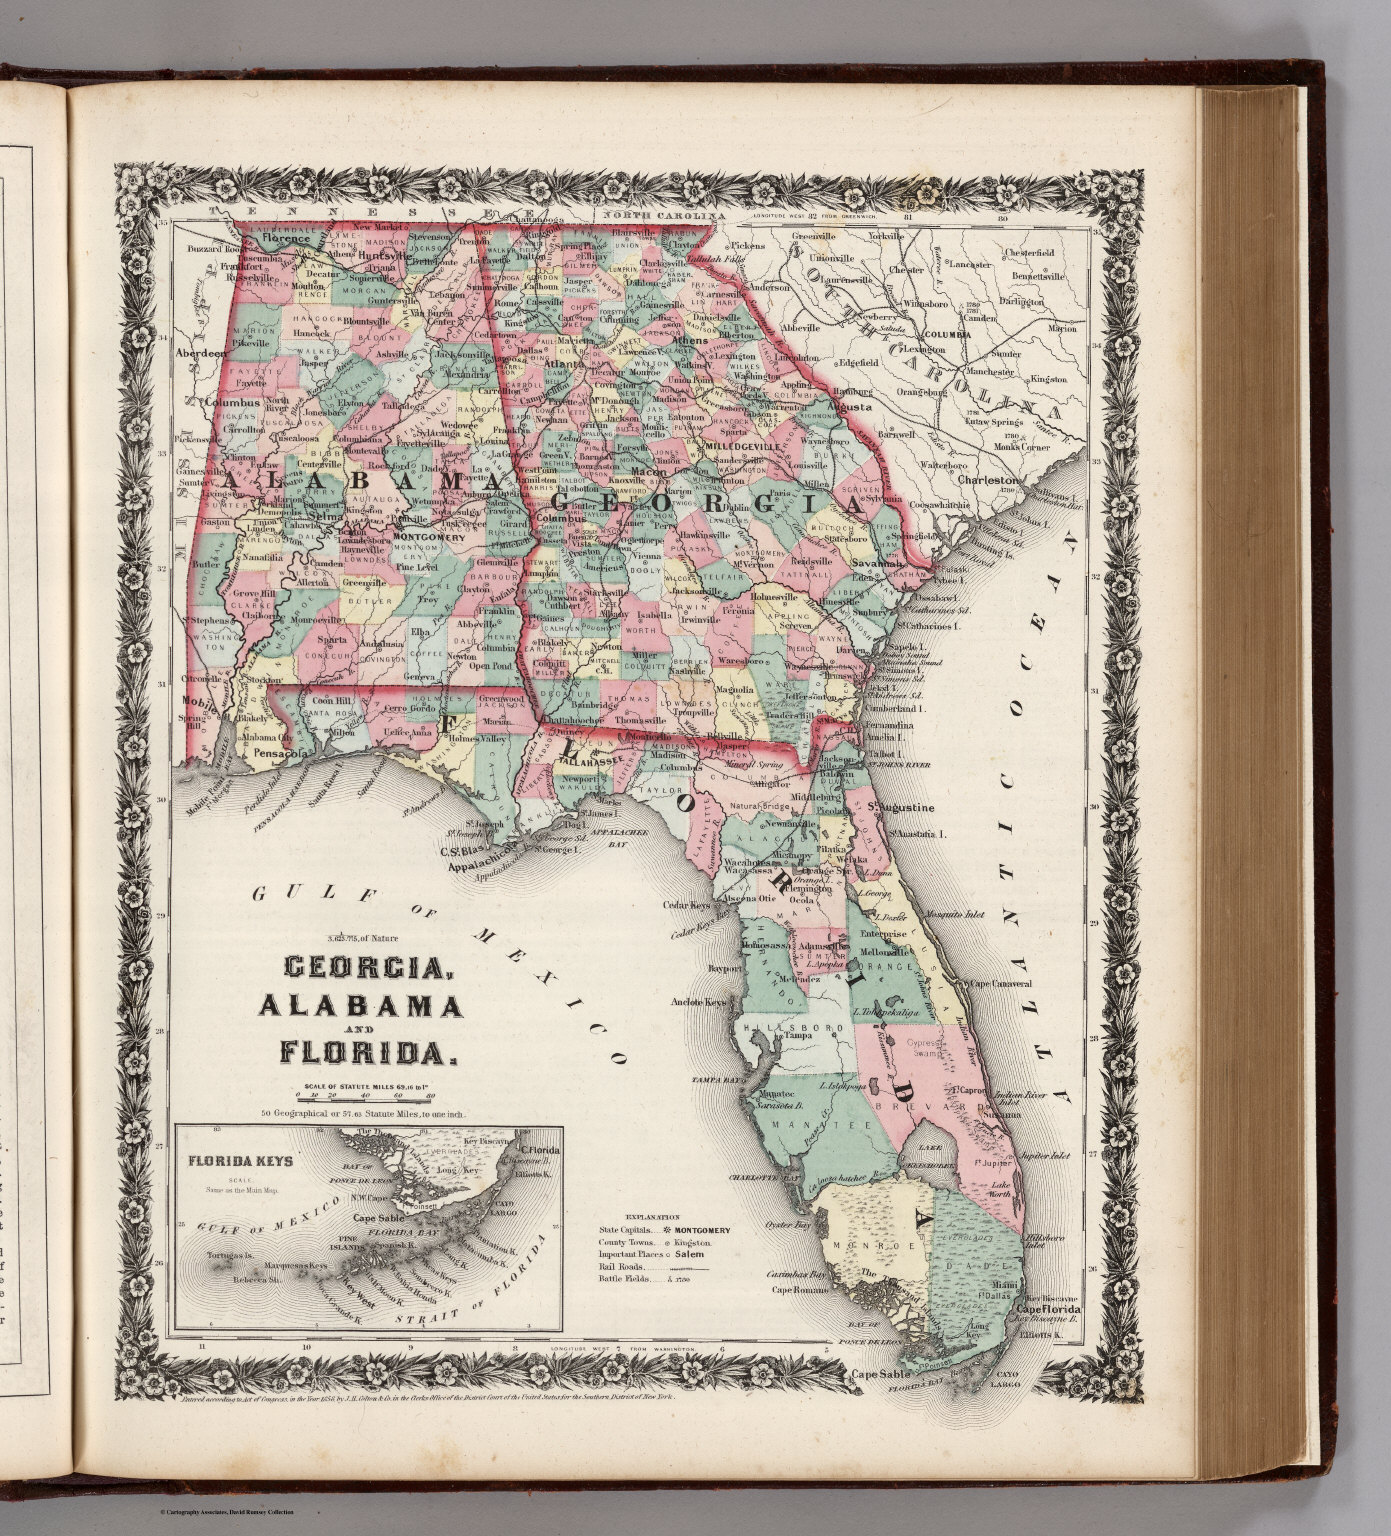 Florida And Georgia Map.Georgia Alabama And Florida David Rumsey Historical Map Collection